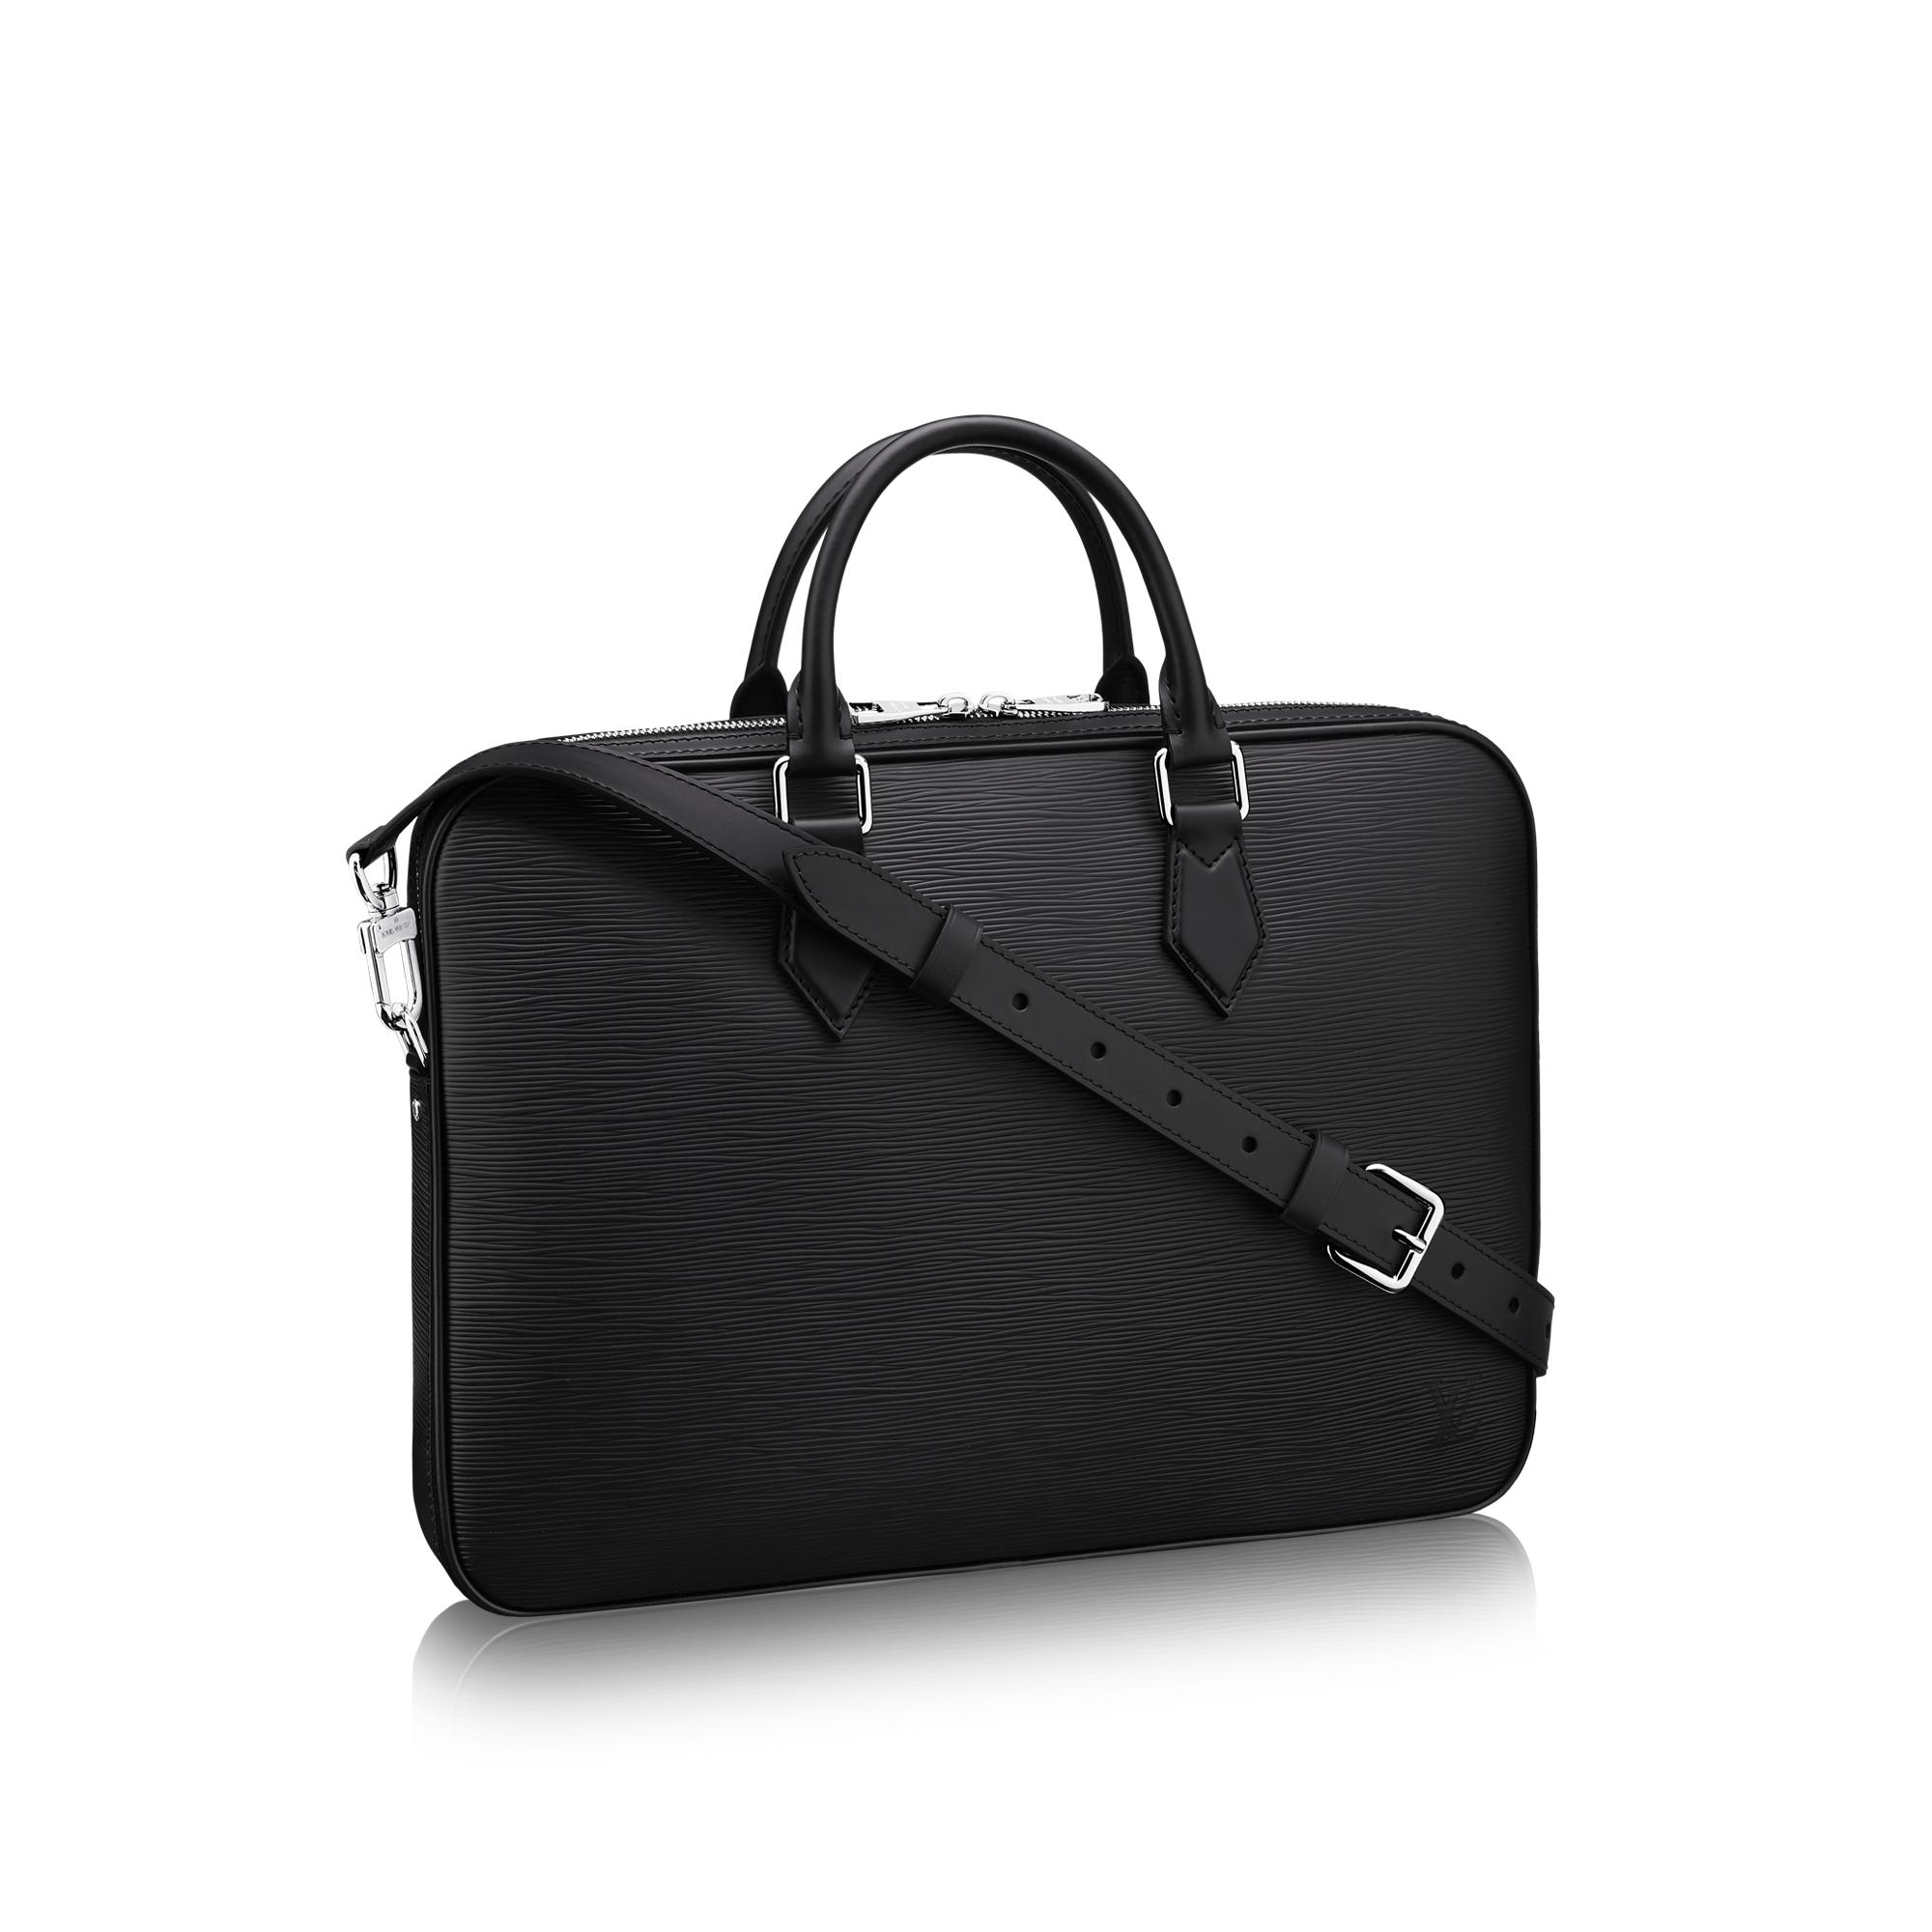 lv briefcase photo - 1